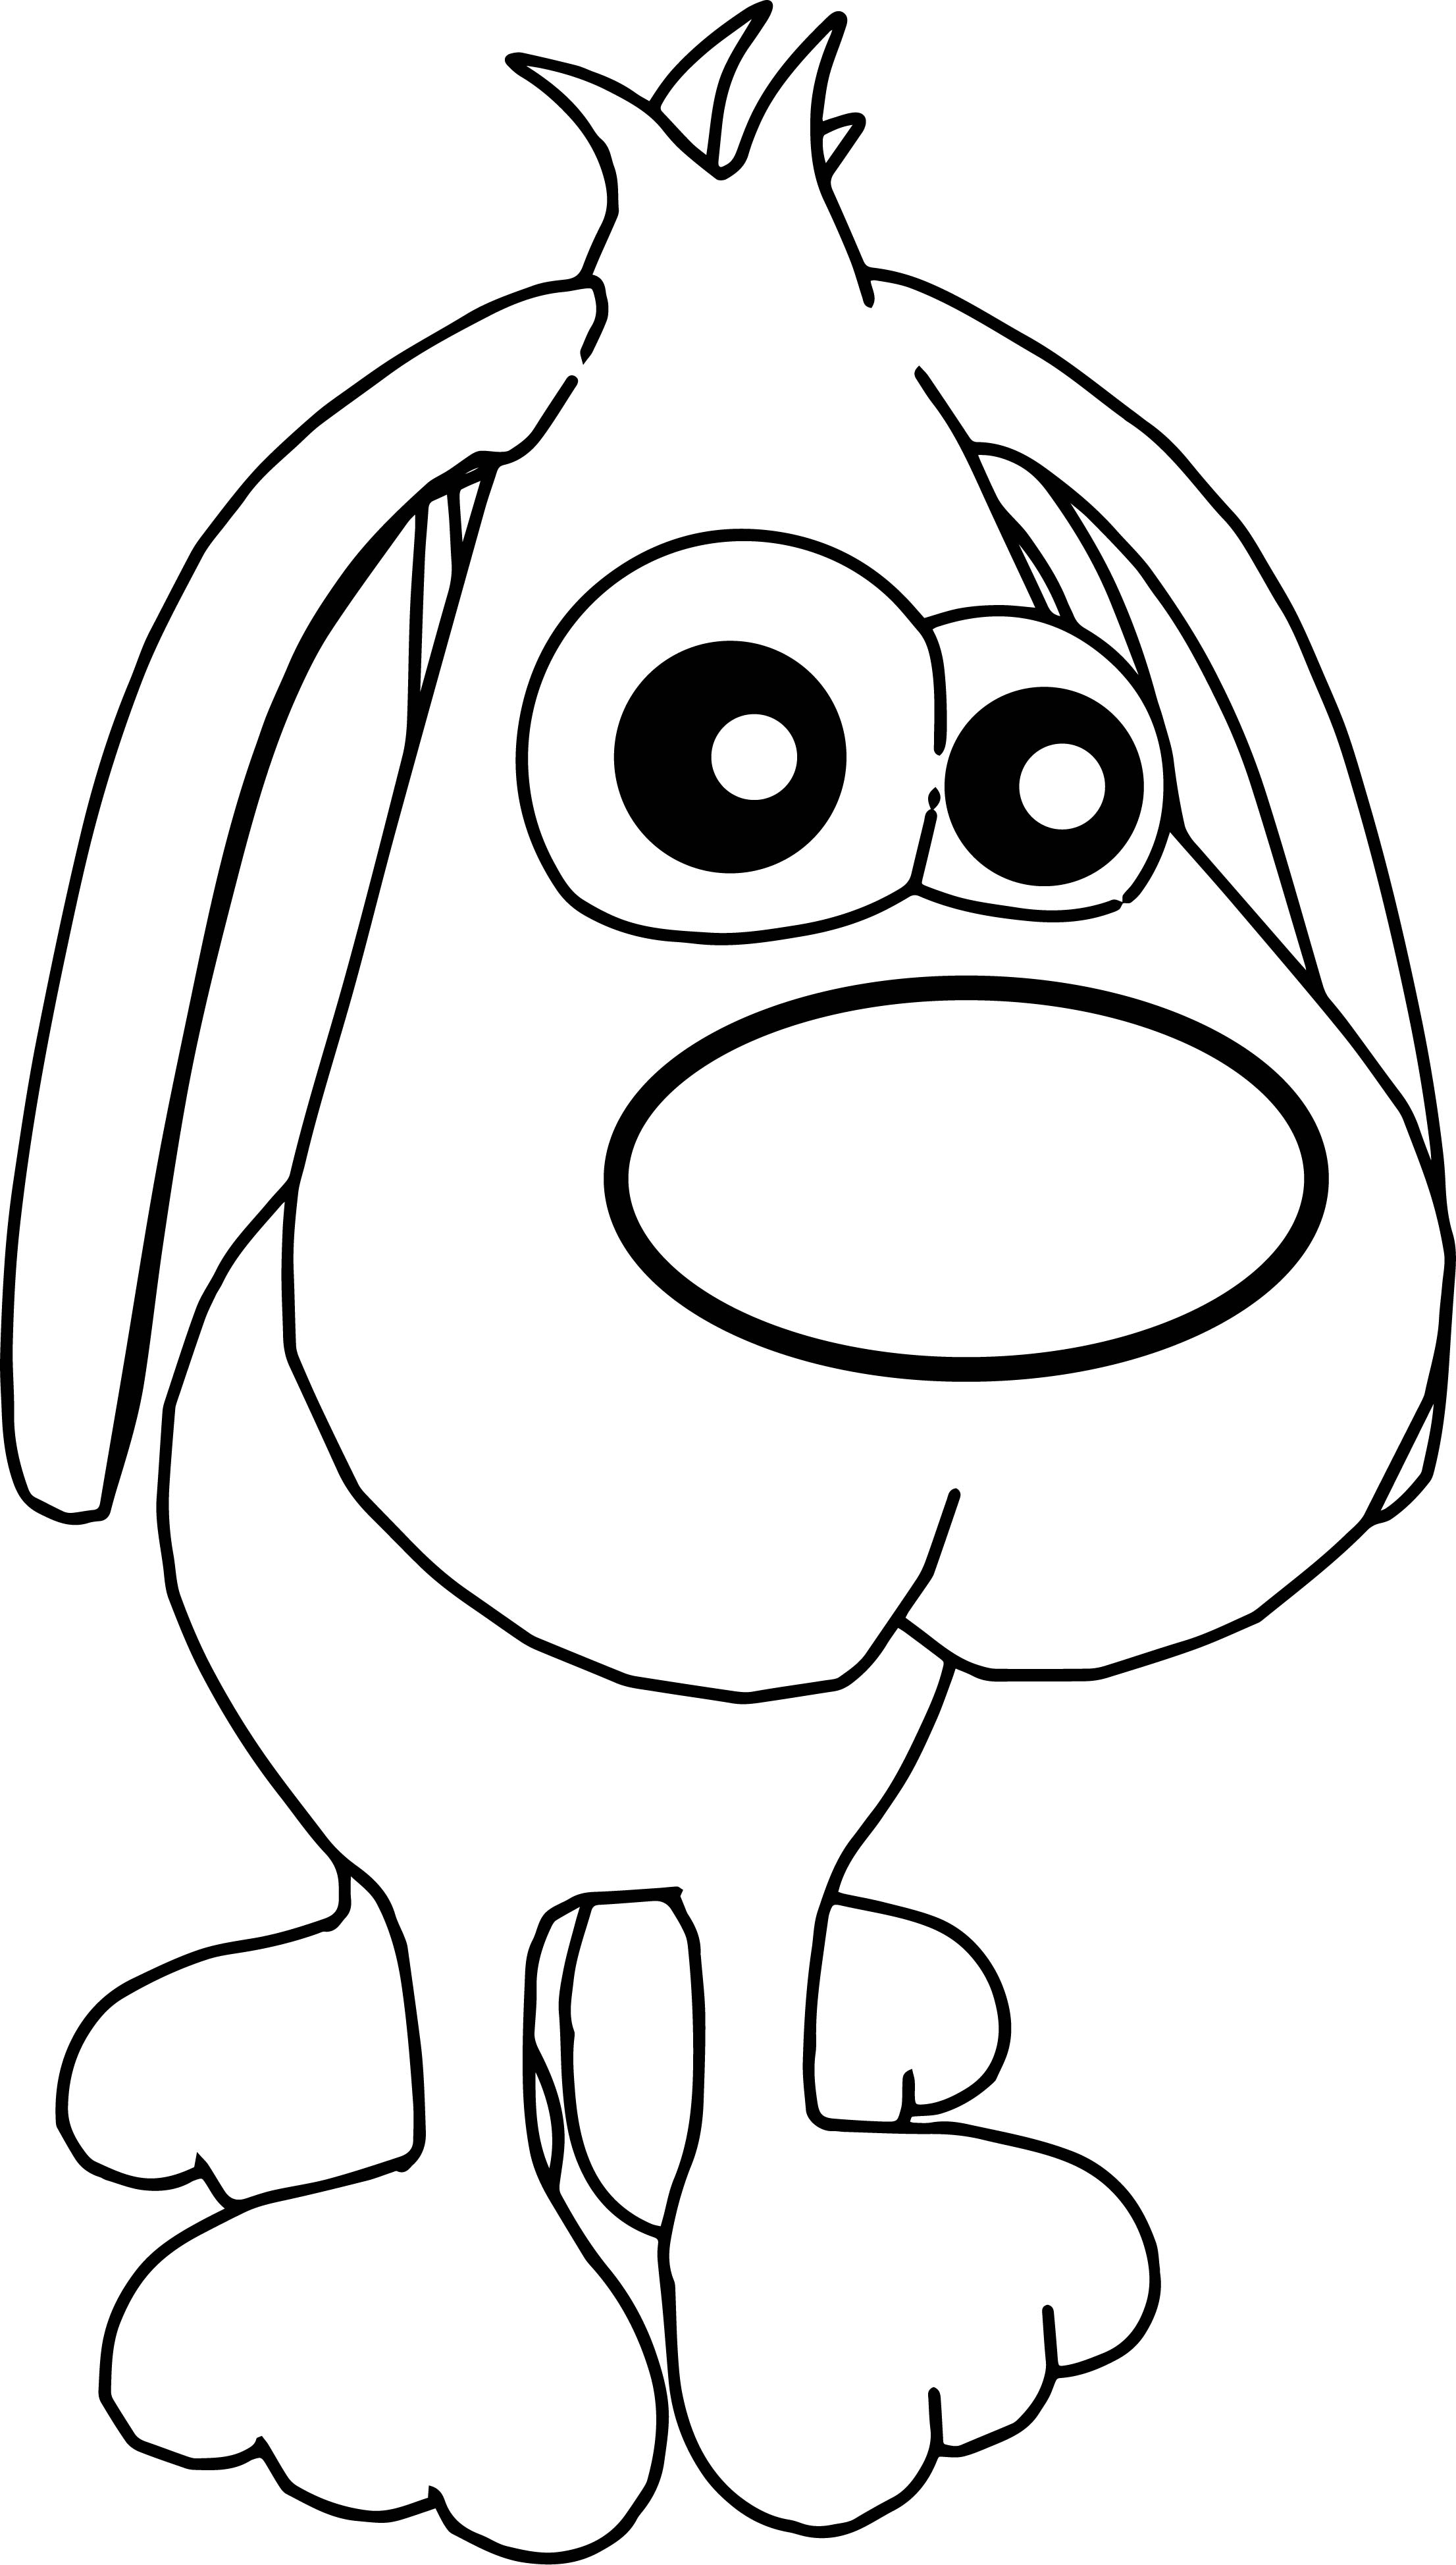 dog face coloring pages dog cute cartoon front face coloring pagesheet free print face pages dog coloring